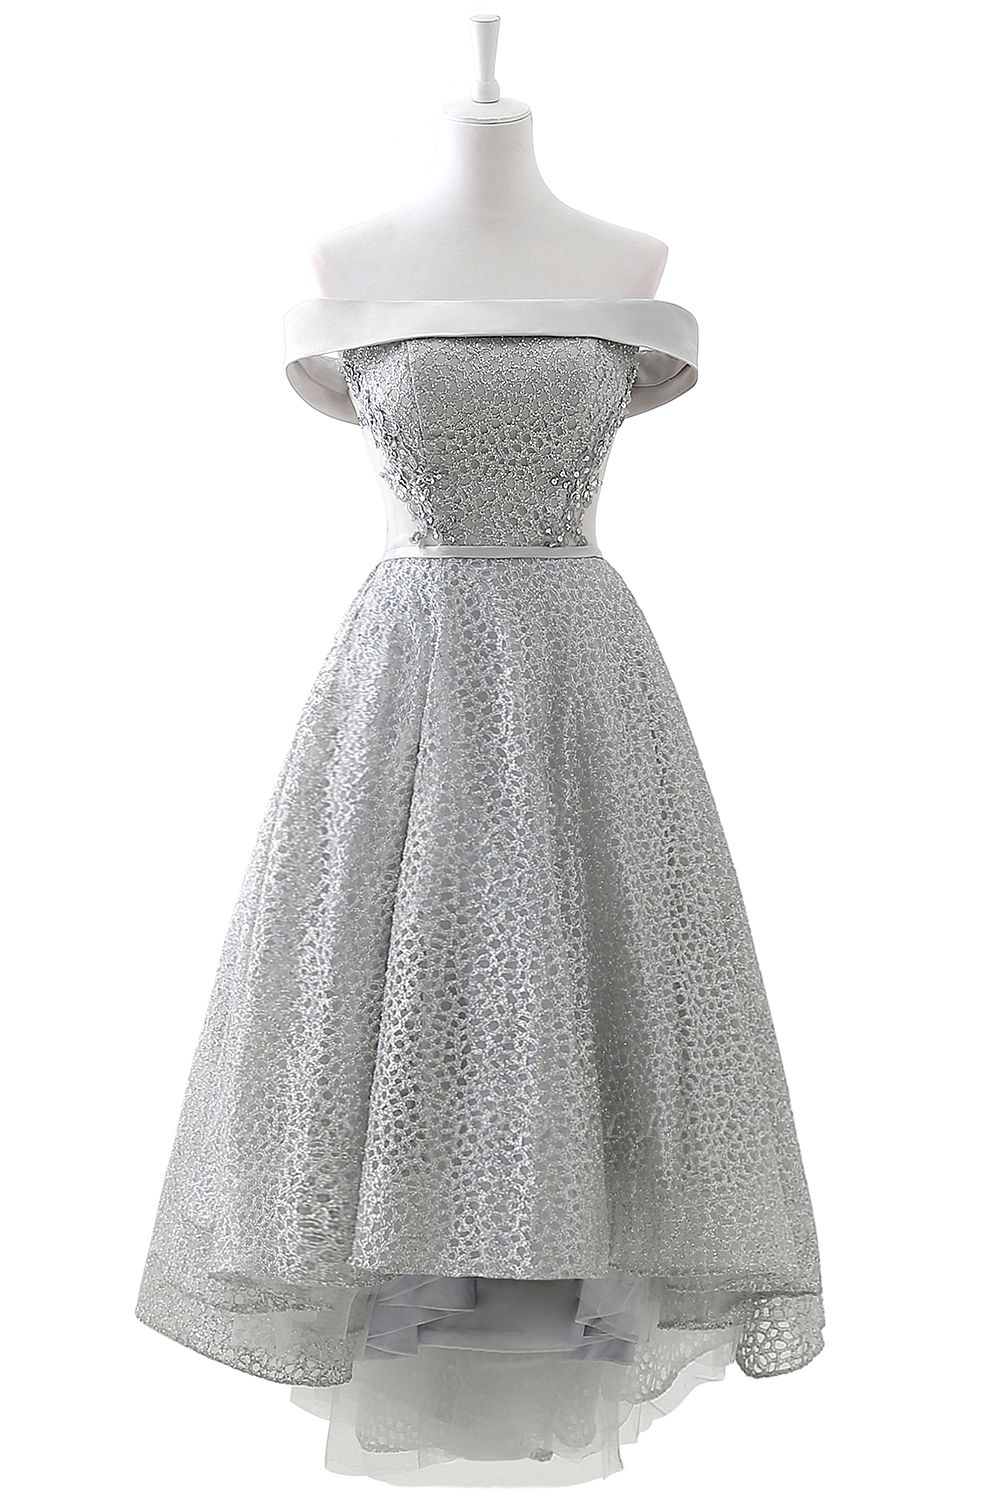 Chic Layers Off-the-Shoulder Lace Hi-Lo Silver Party Dresses